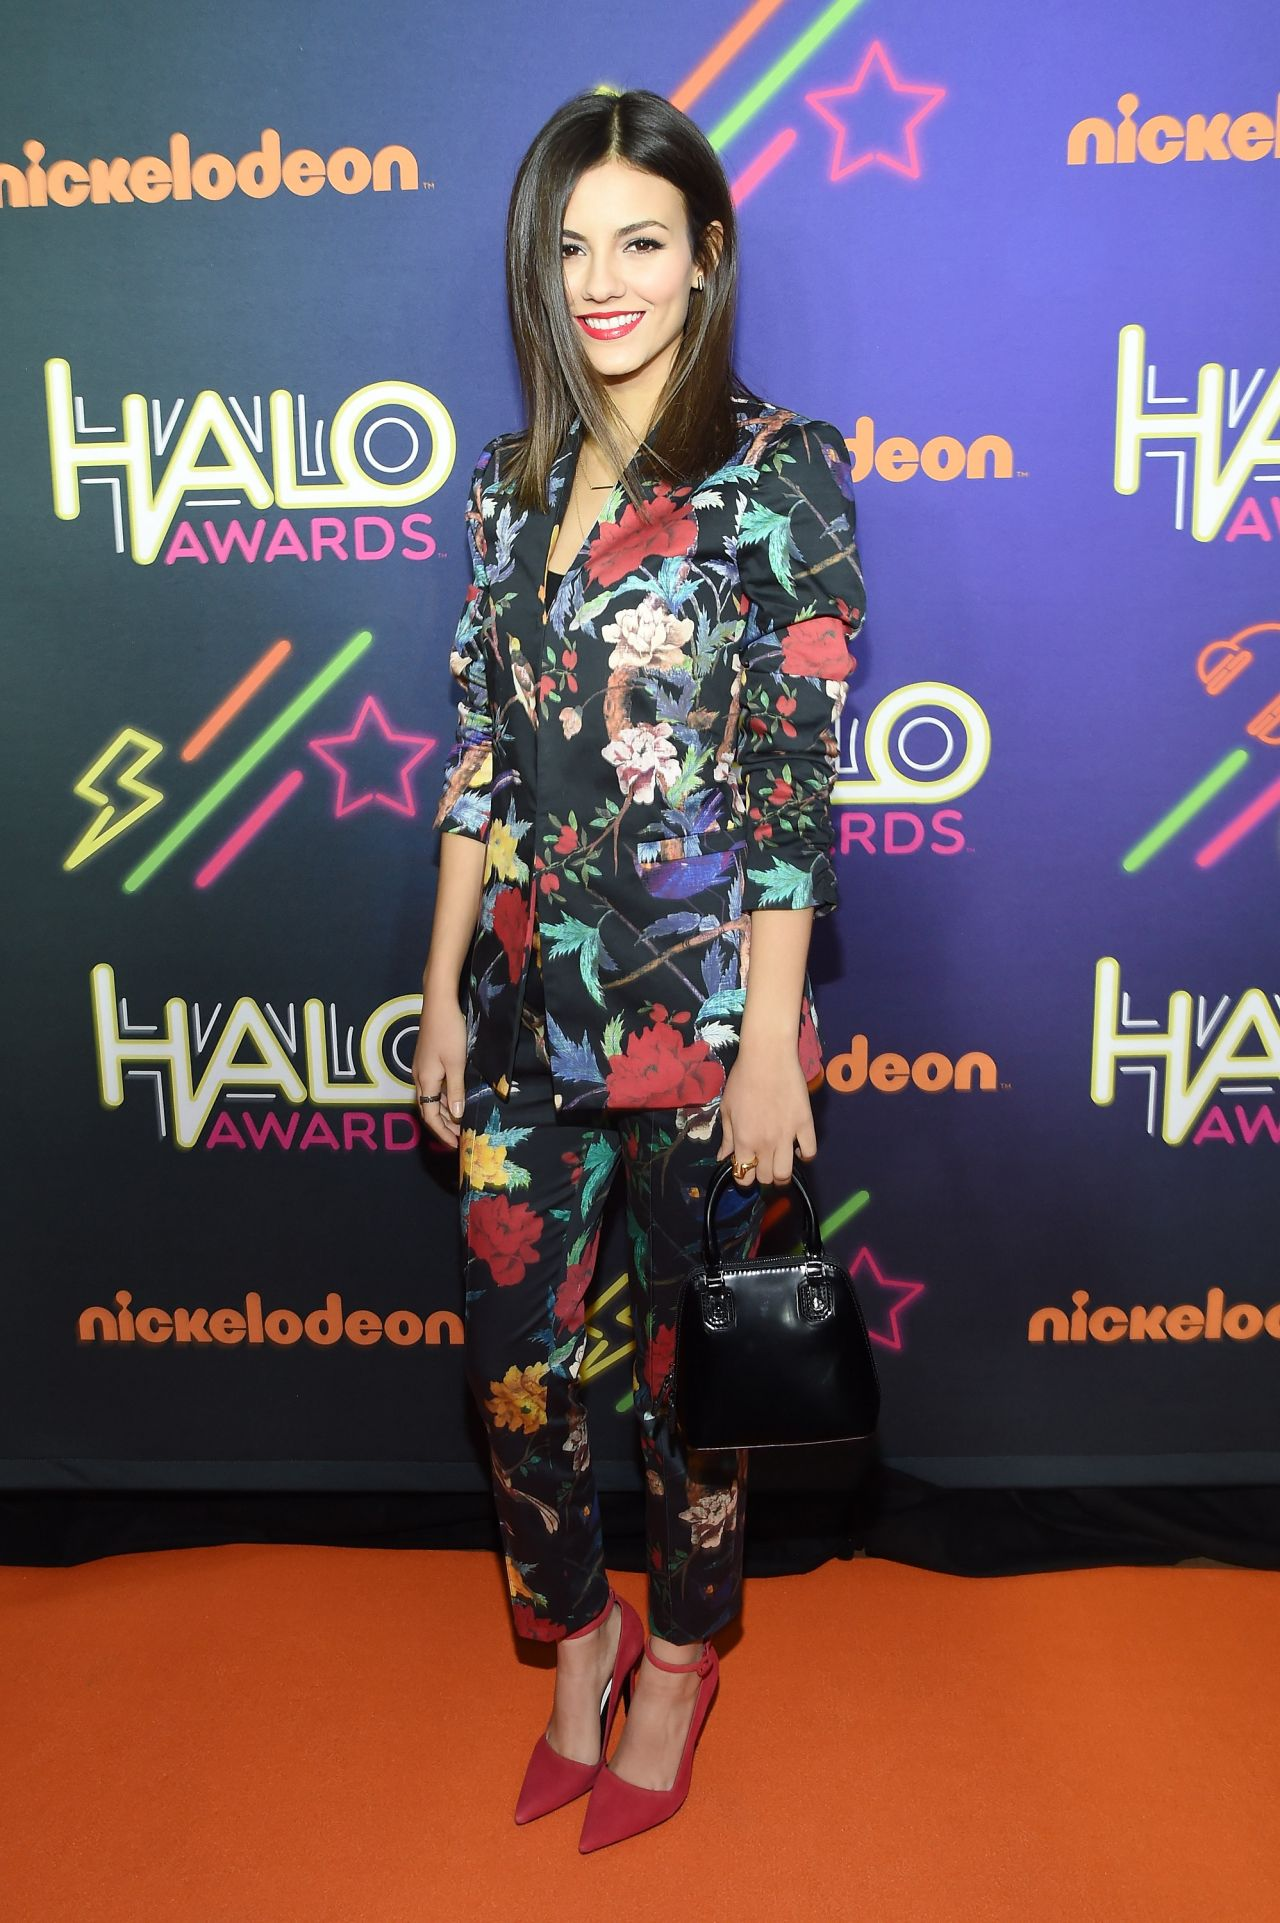 victoria-justice-2014-nickelodeon-halo-awards-in-new-york-city_2